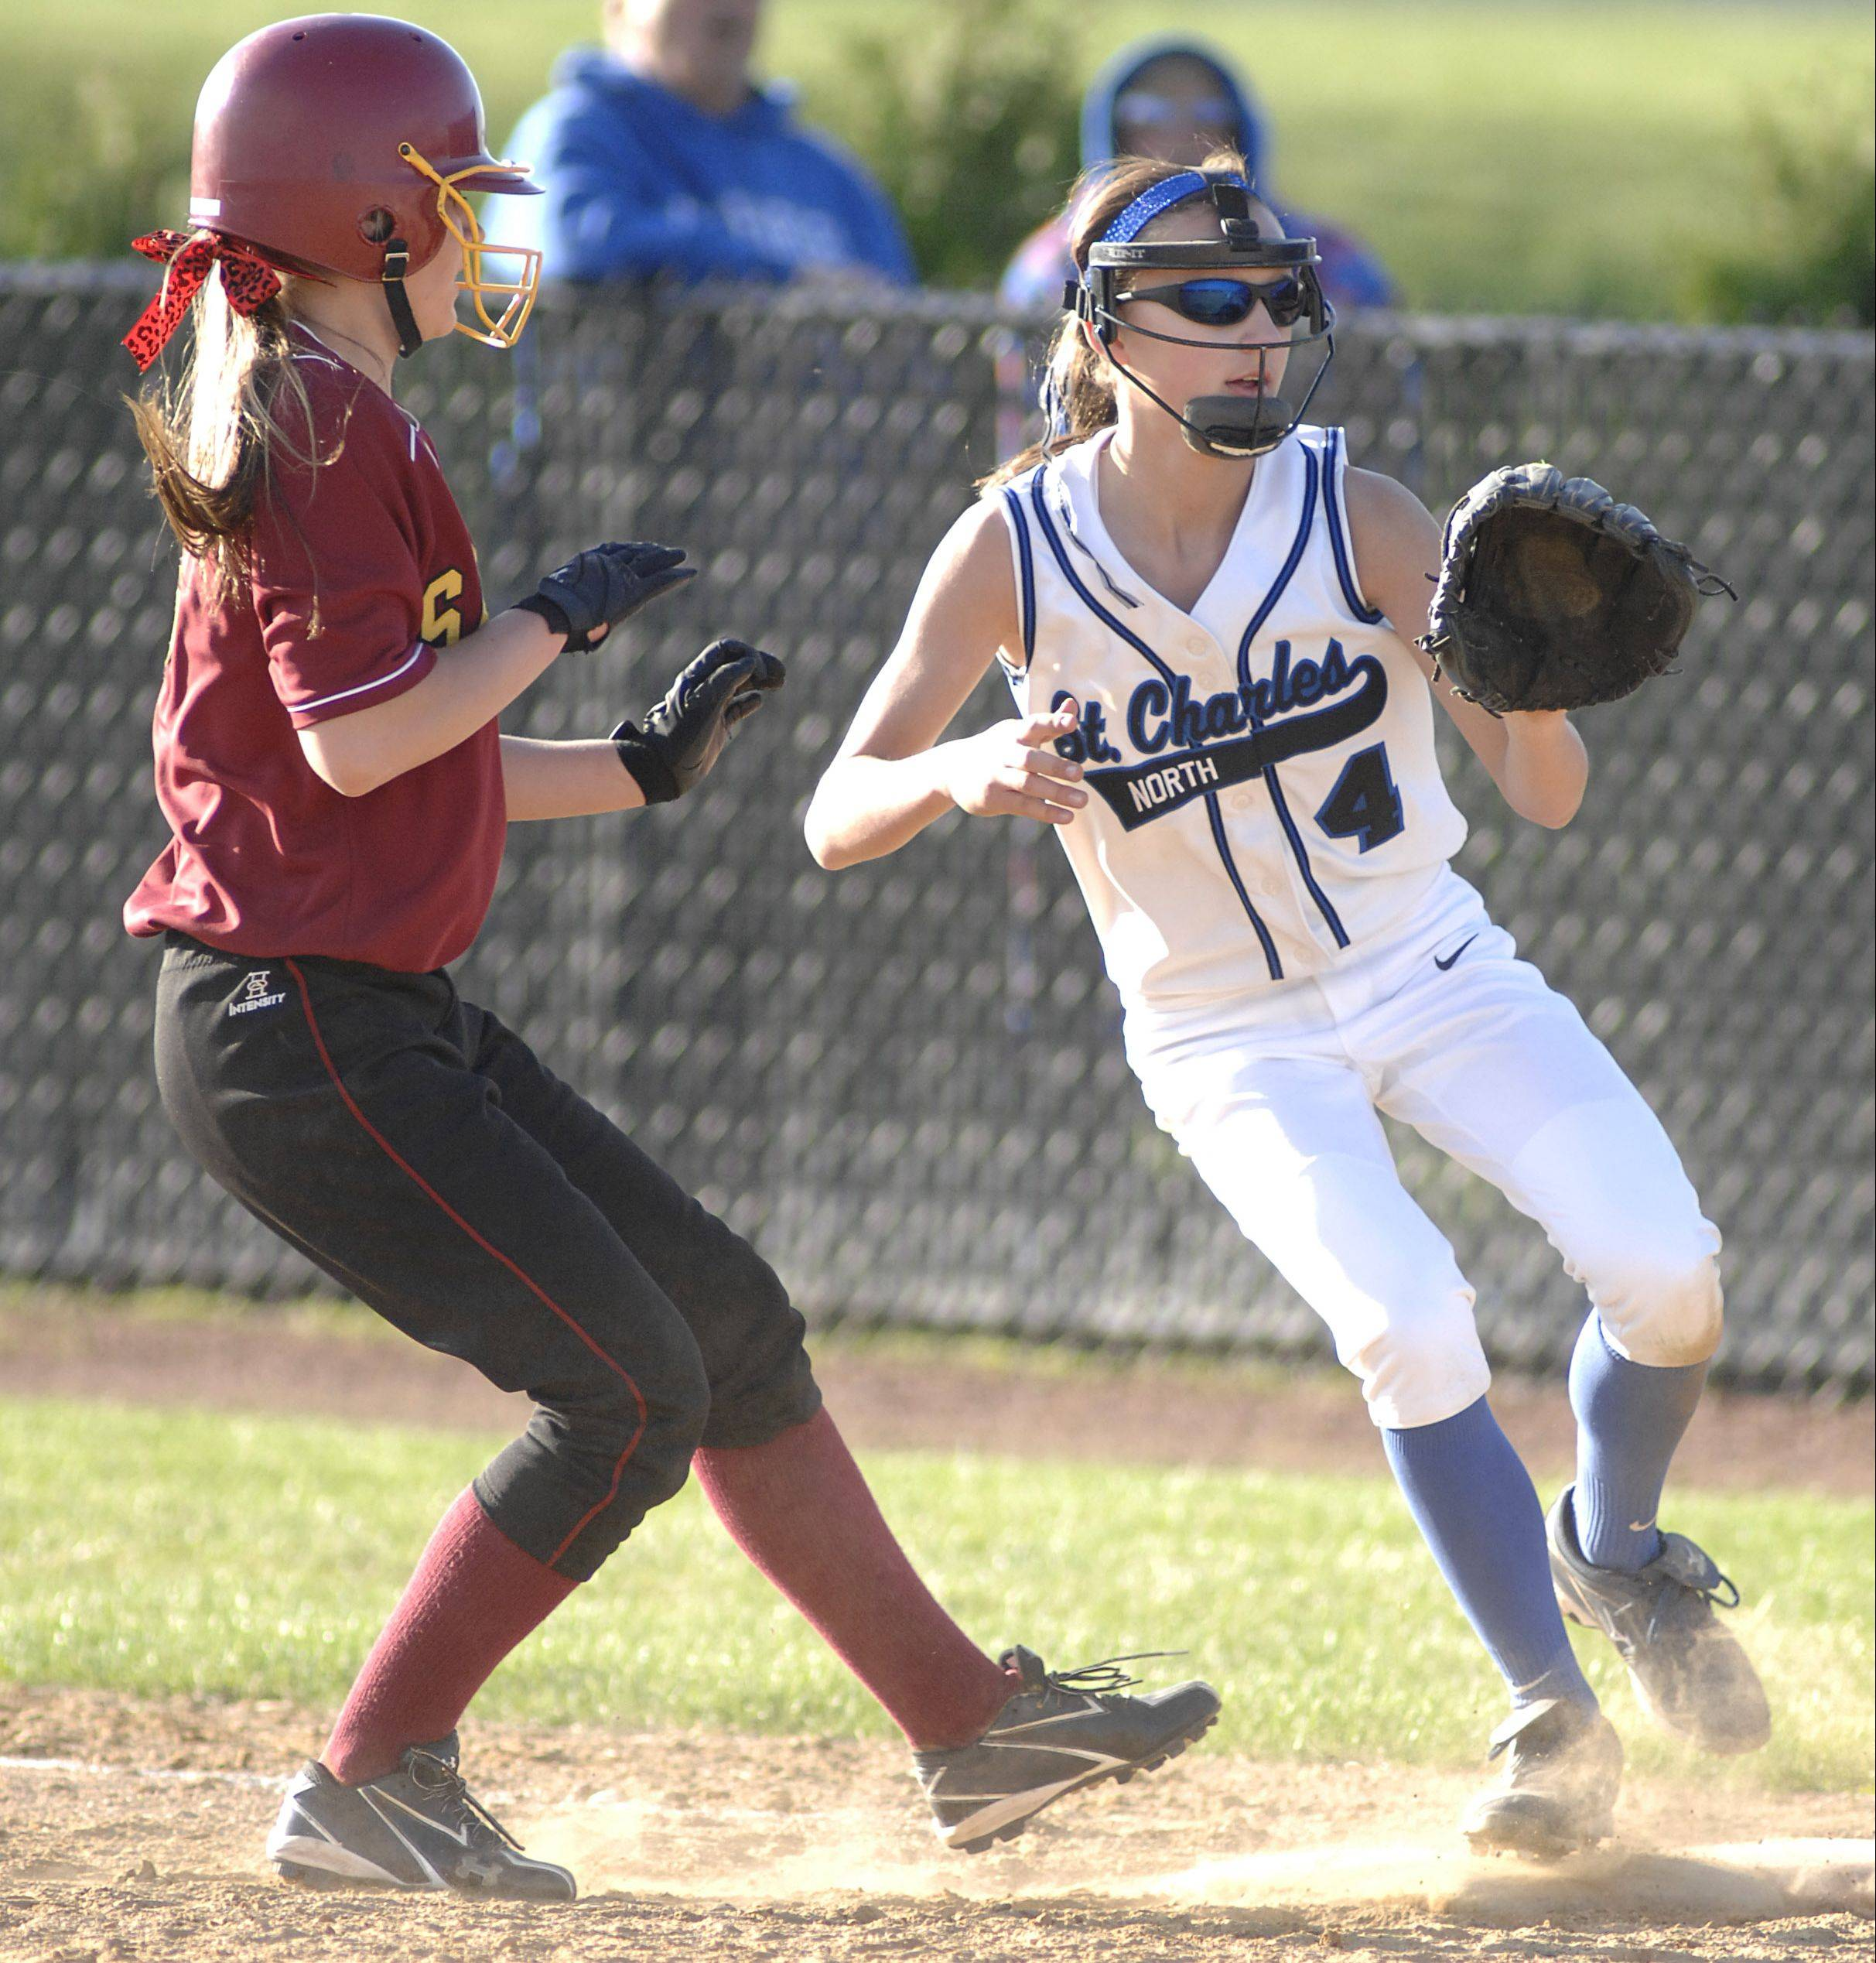 St. Charles North's Kaitlyn Waslawski is one of a number of young players playing a key role for area teams this spring.